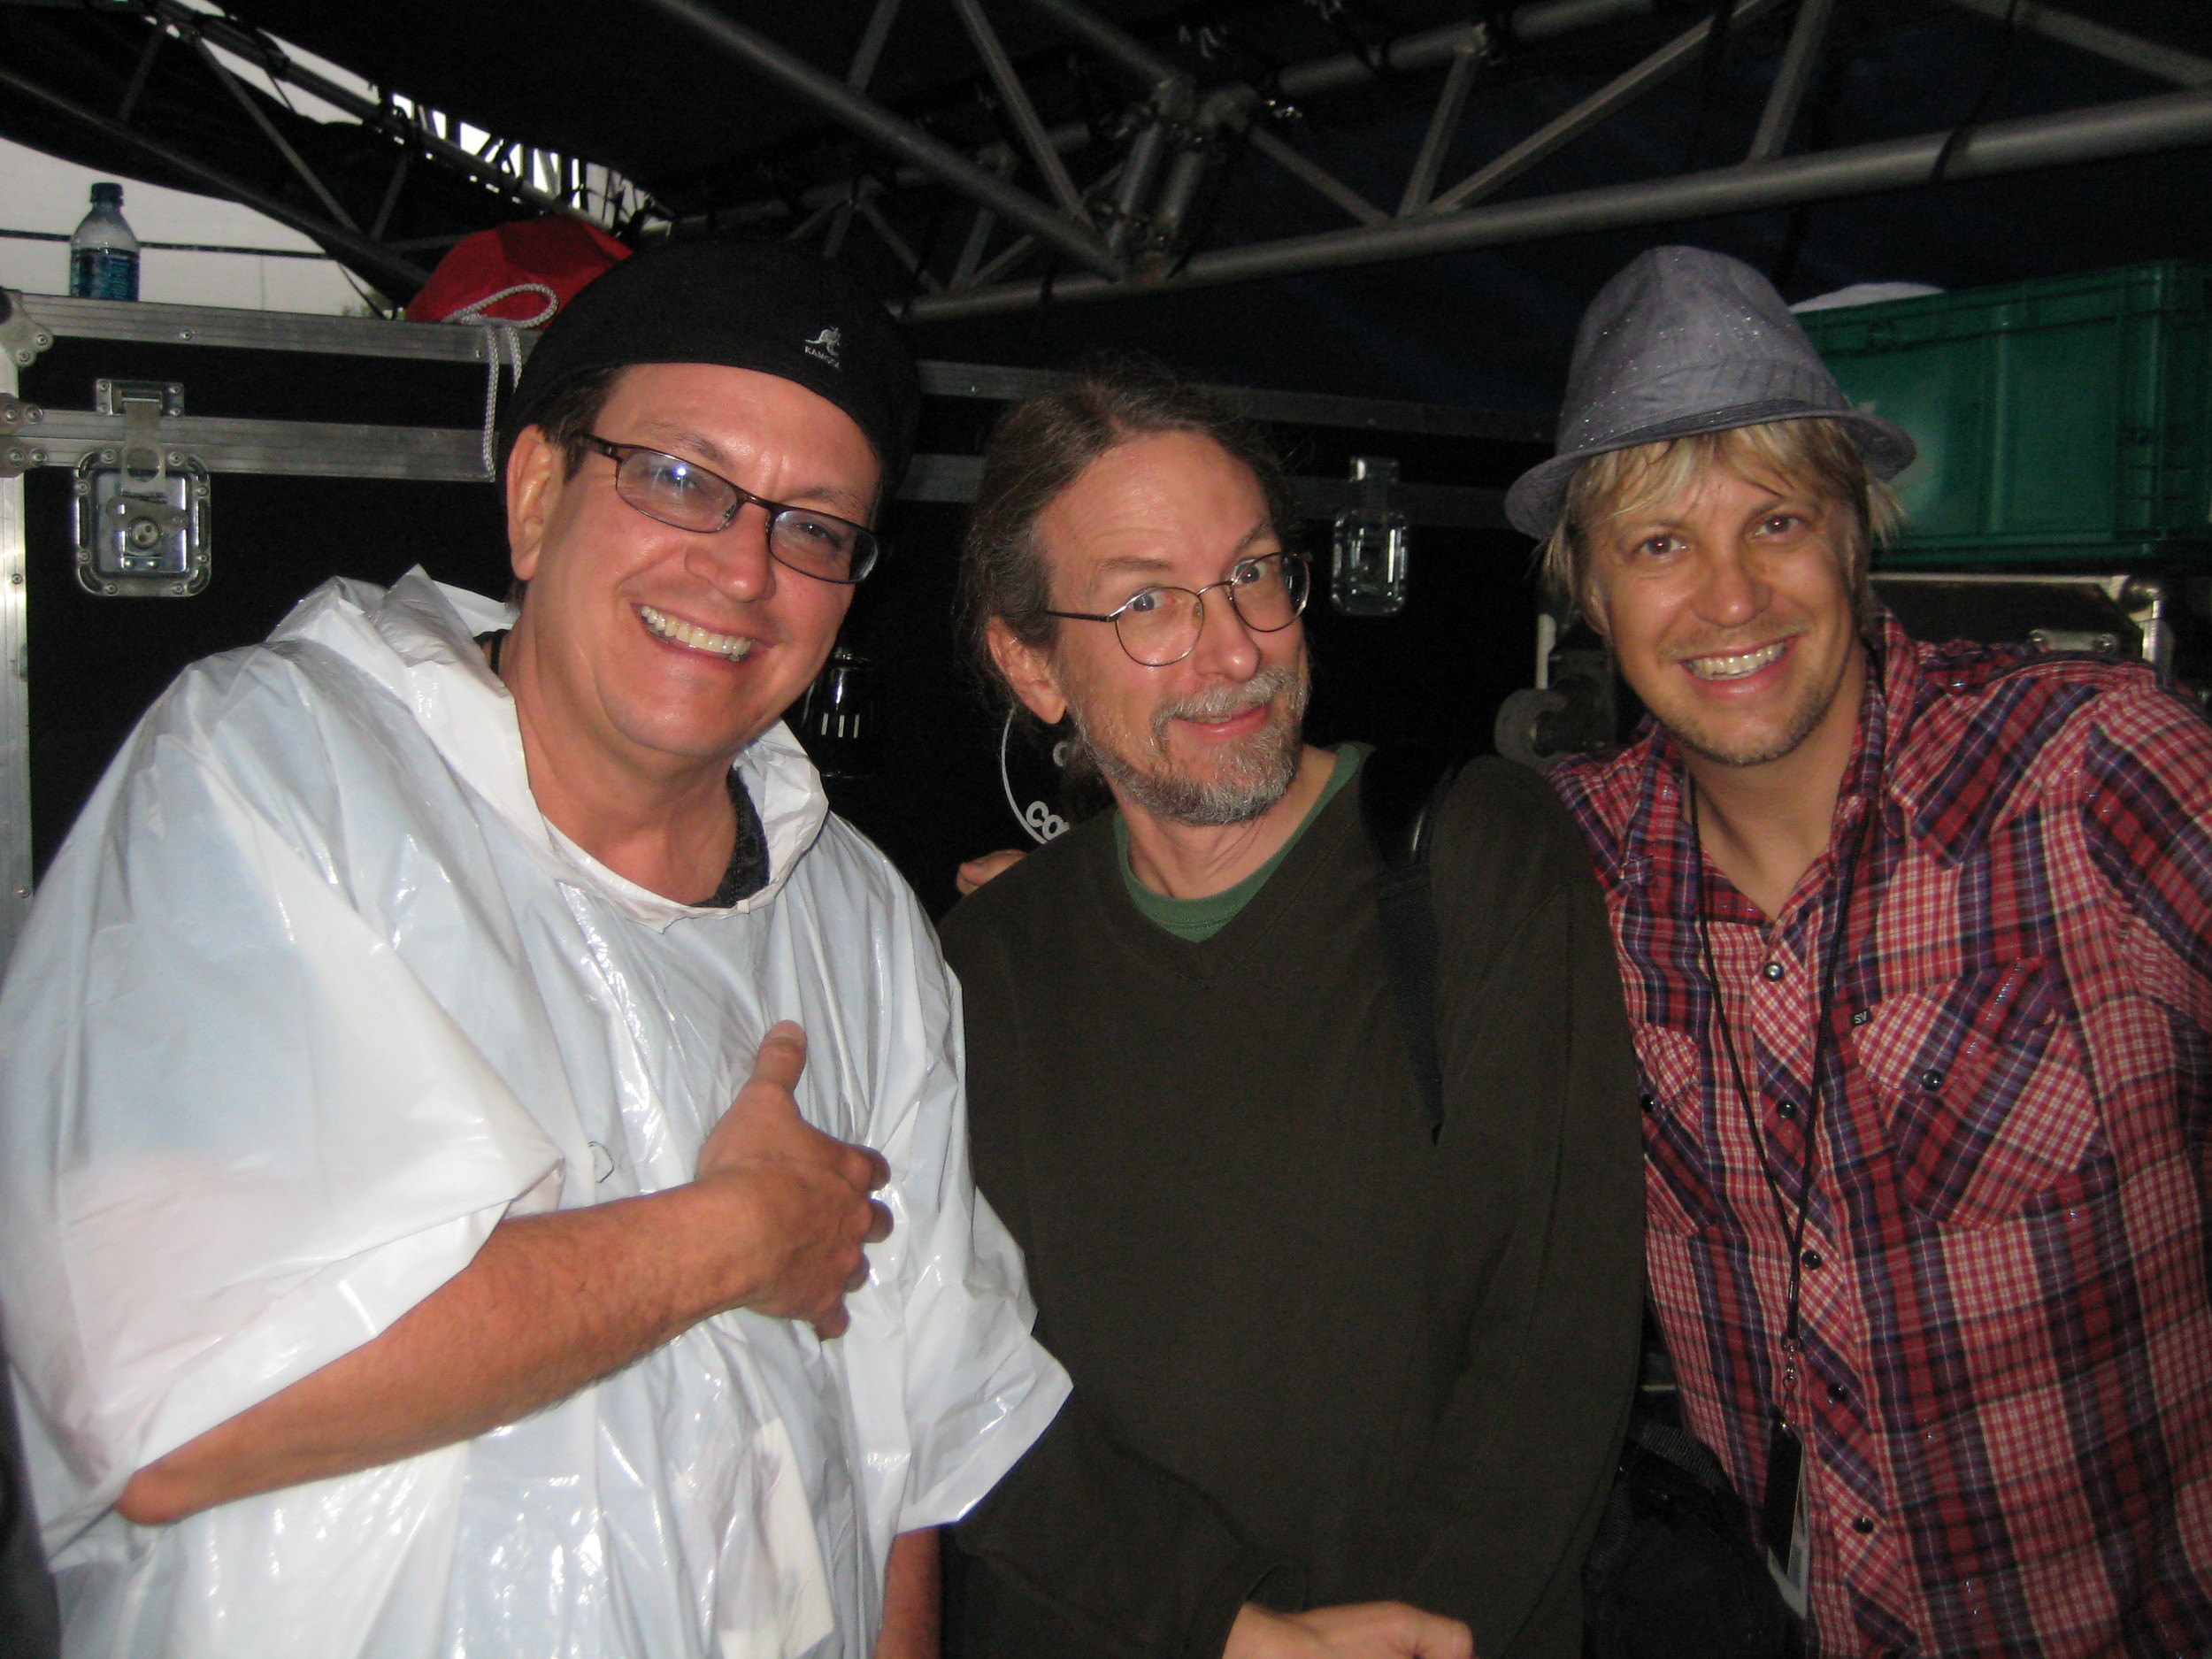 w/ two of Minneapolis' finest: Ricky Peterson & Jimmy Johnson, Memphis Mud, 2009